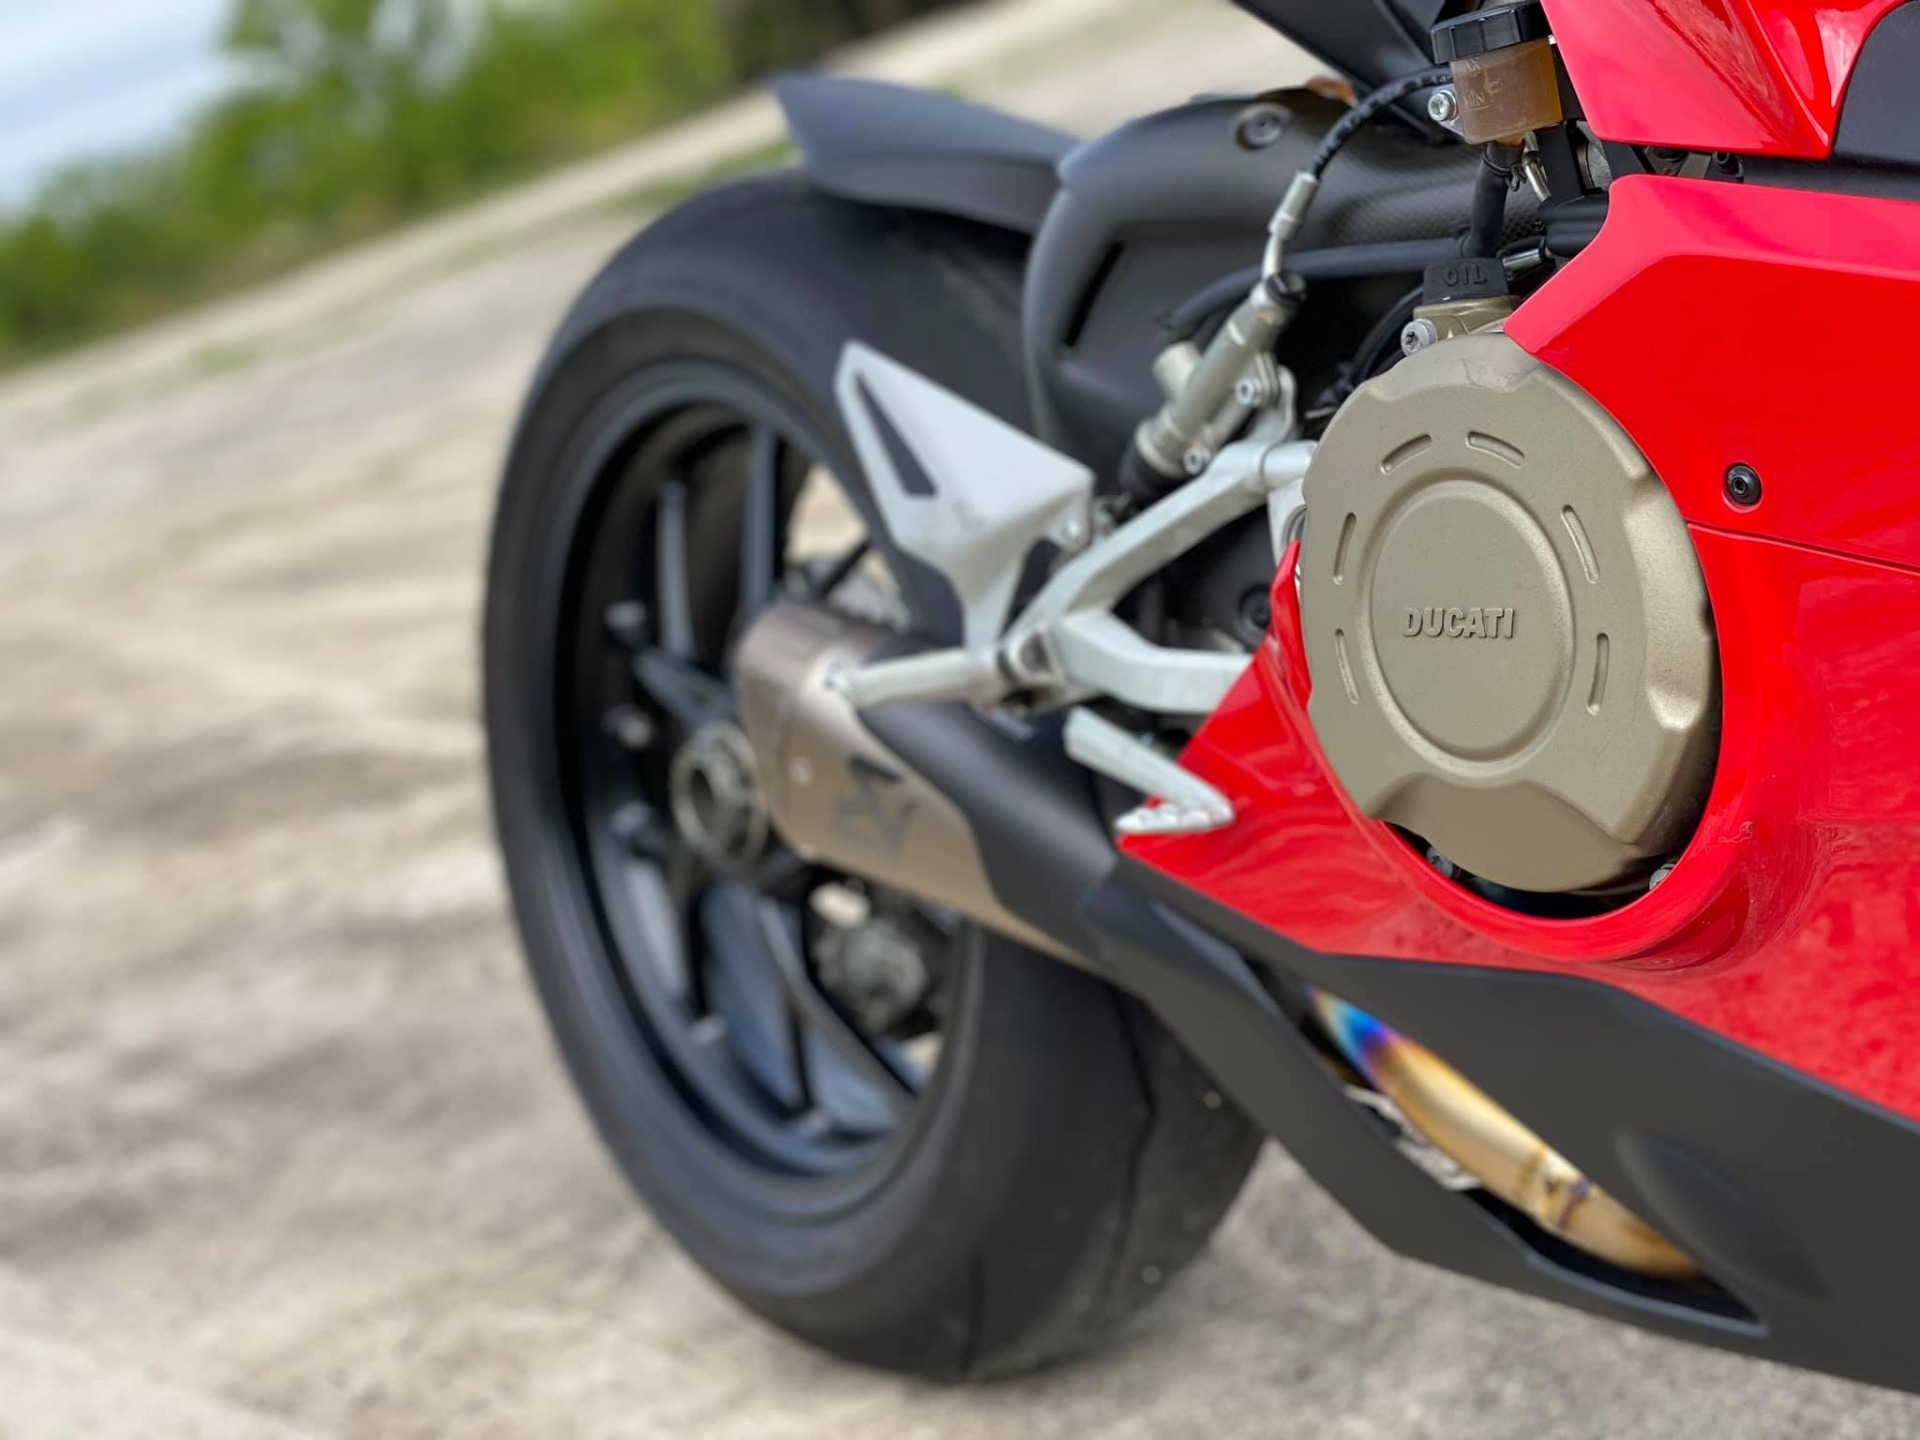 Used-2018-Ducati-Panigale-V4-AKRAPOVIC-EXHAUST---ONLY-2K-MILES